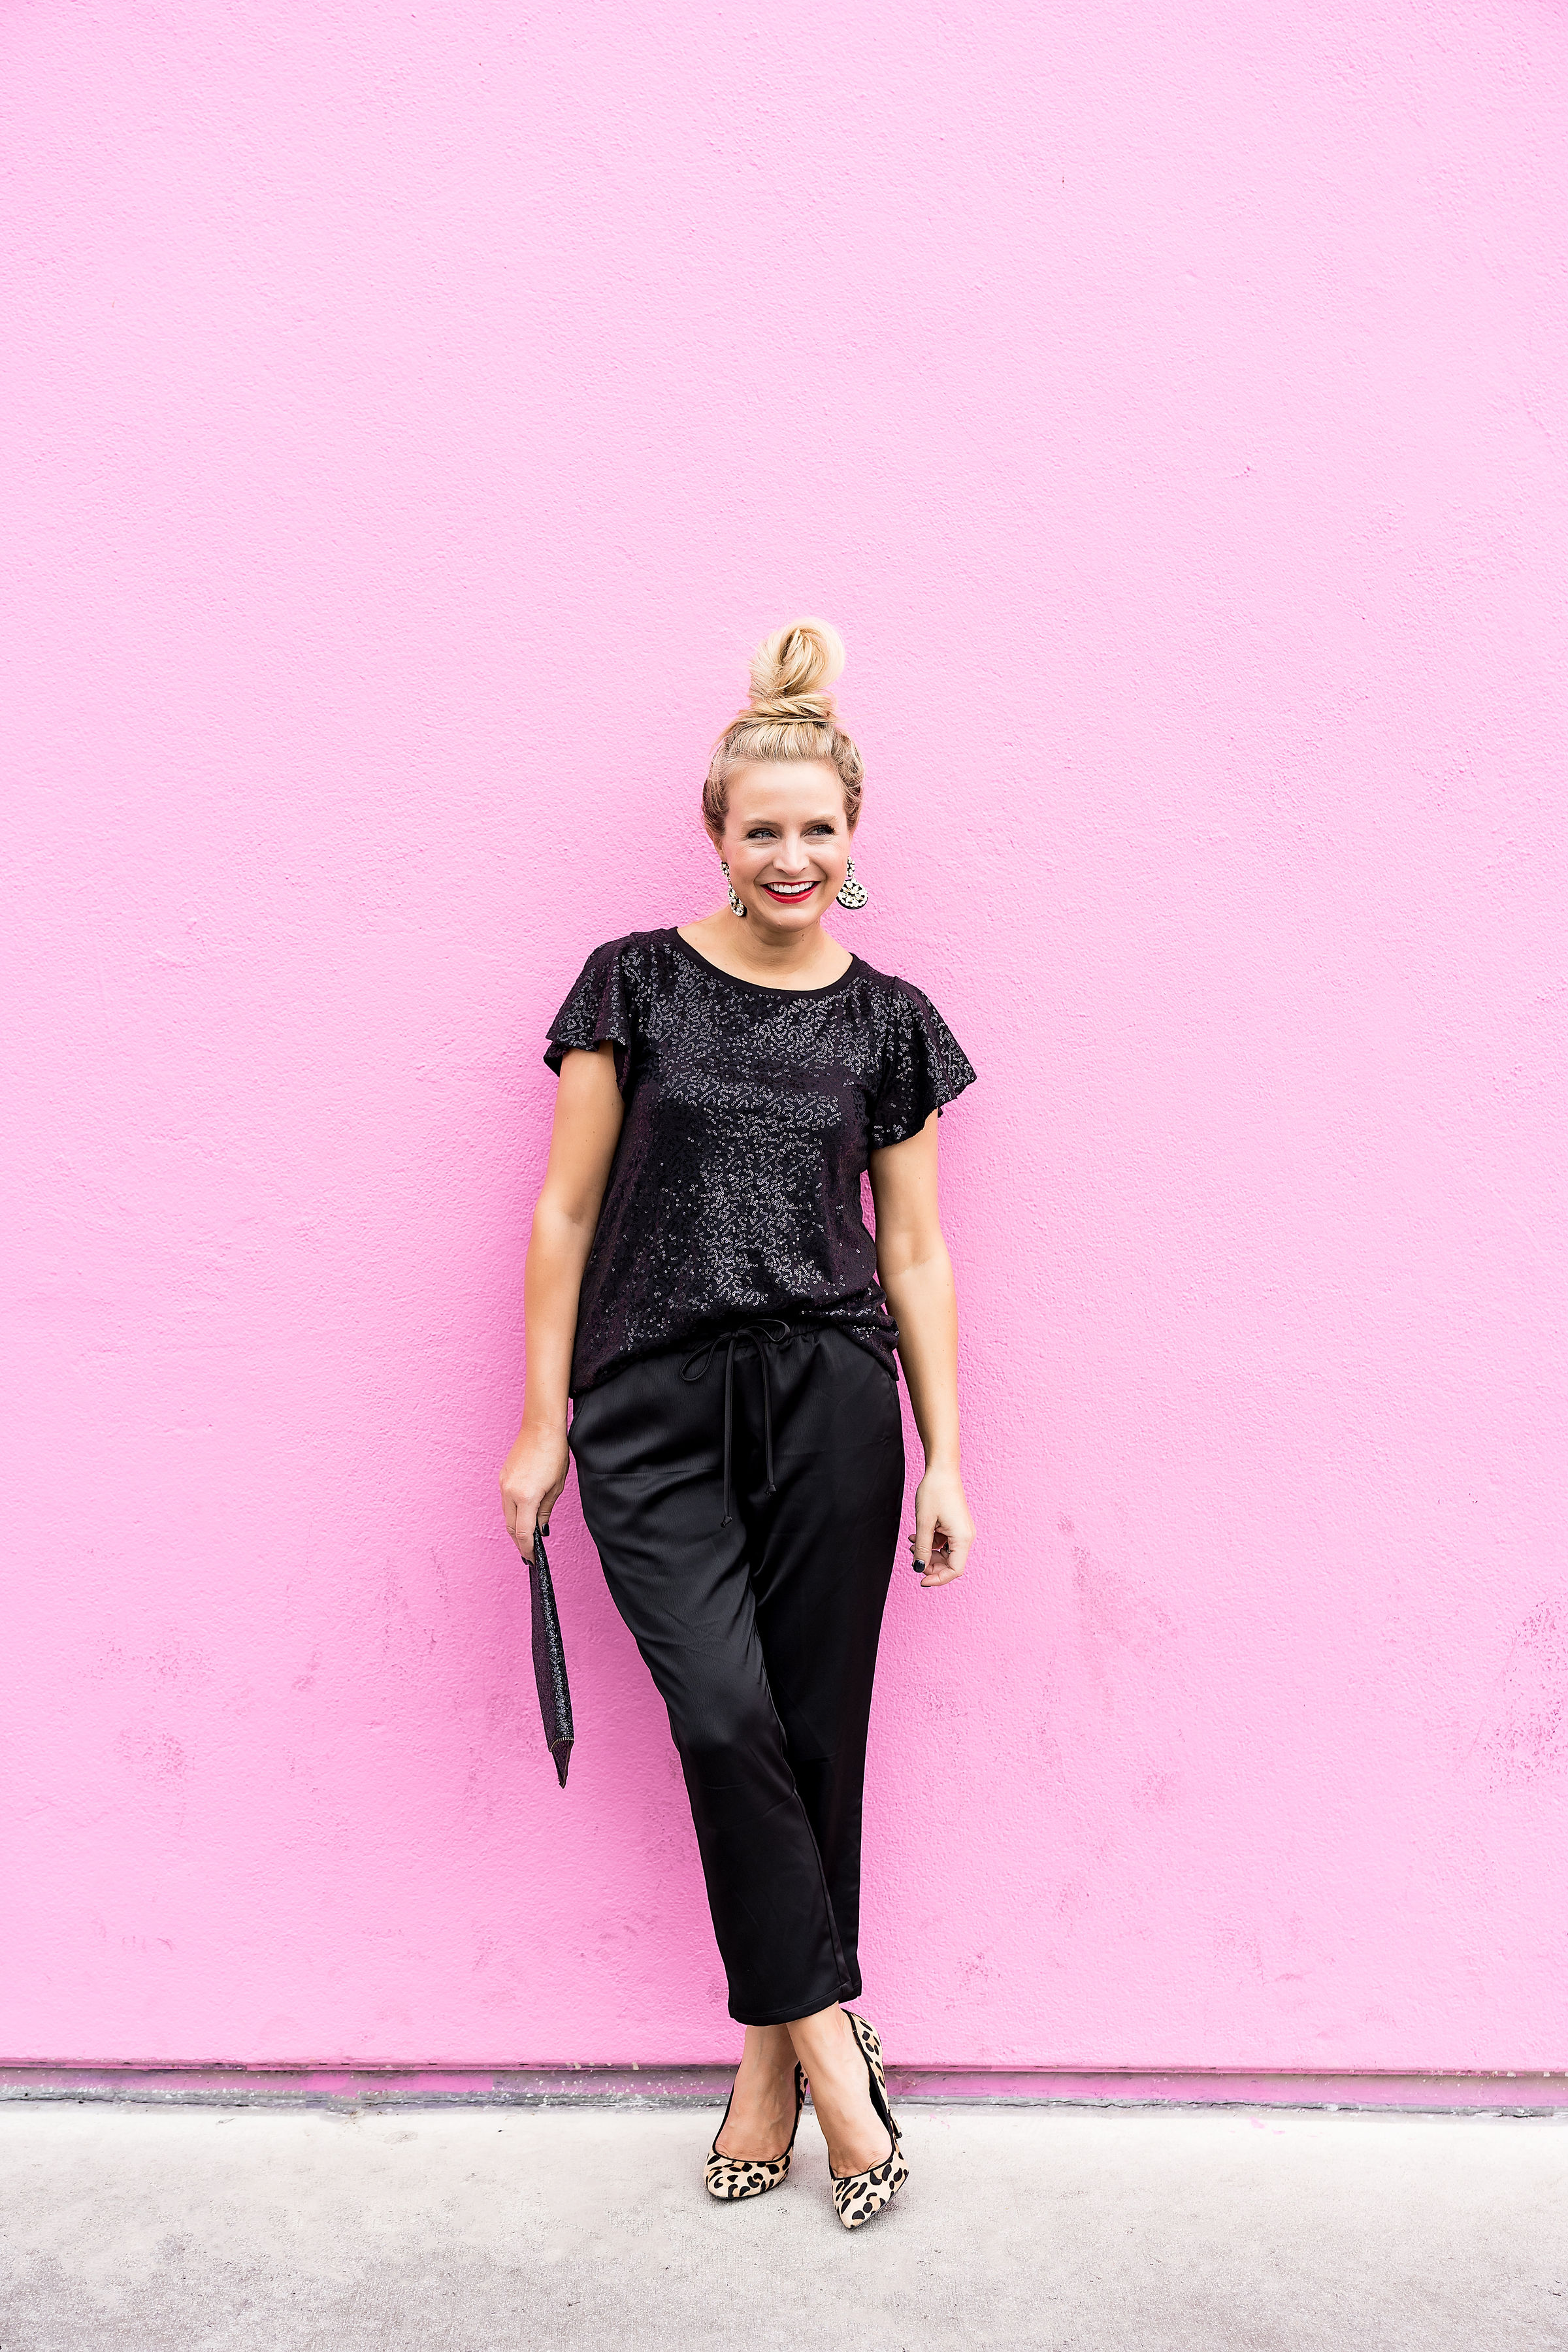 Top Houston fashion blogger, Fancy Ashley, features 7 Holiday Outfits perfect for the season: image of a woman wearing Black sequin tee, black jogger pants, Kate Spade earrings, glitter clutch and sam Edelman leopard pumps all available at Nordstrom